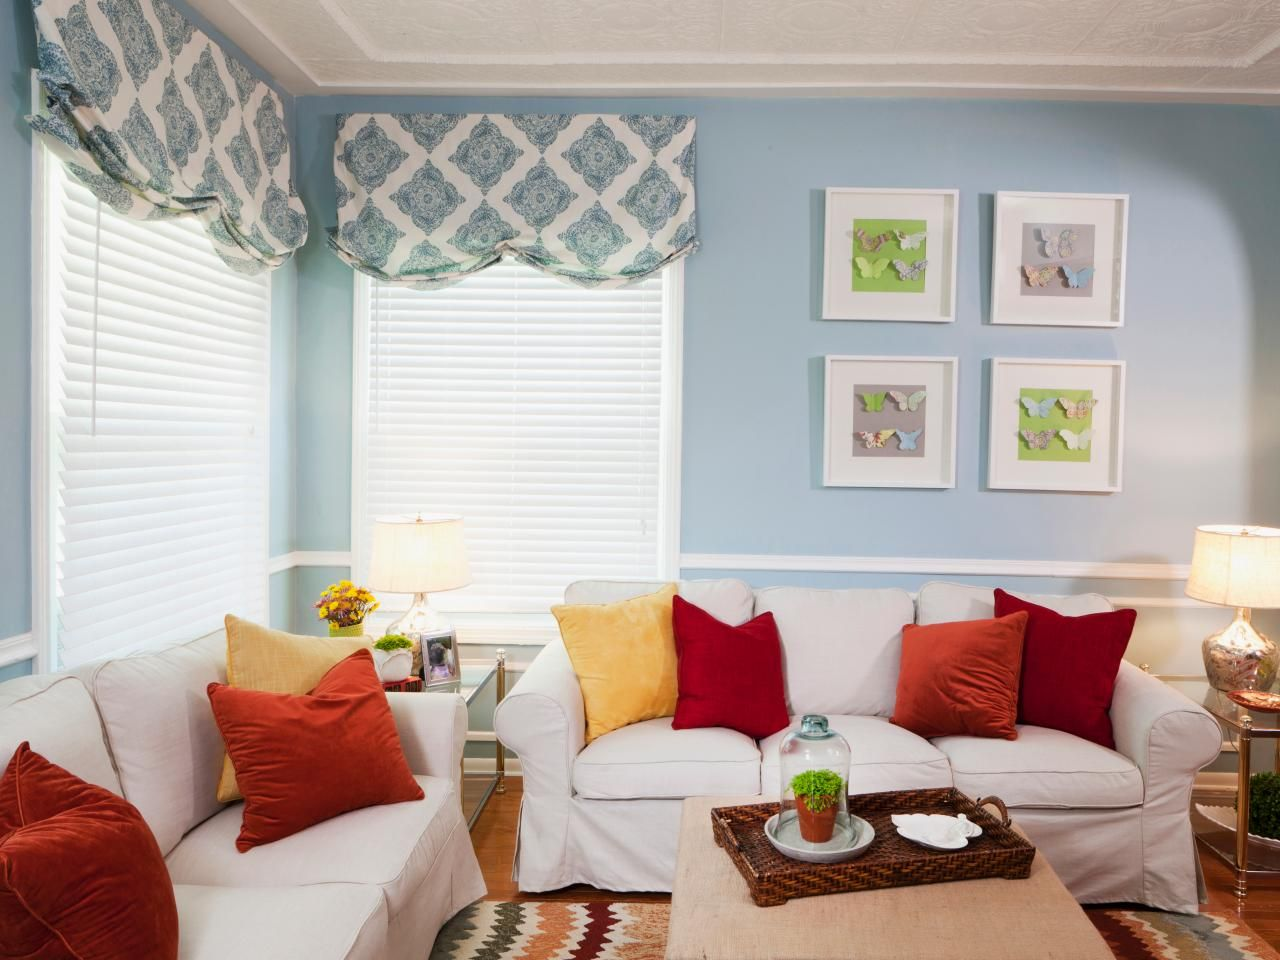 A blue-and-white color palette evokes a calm, casual atmosphere for ...